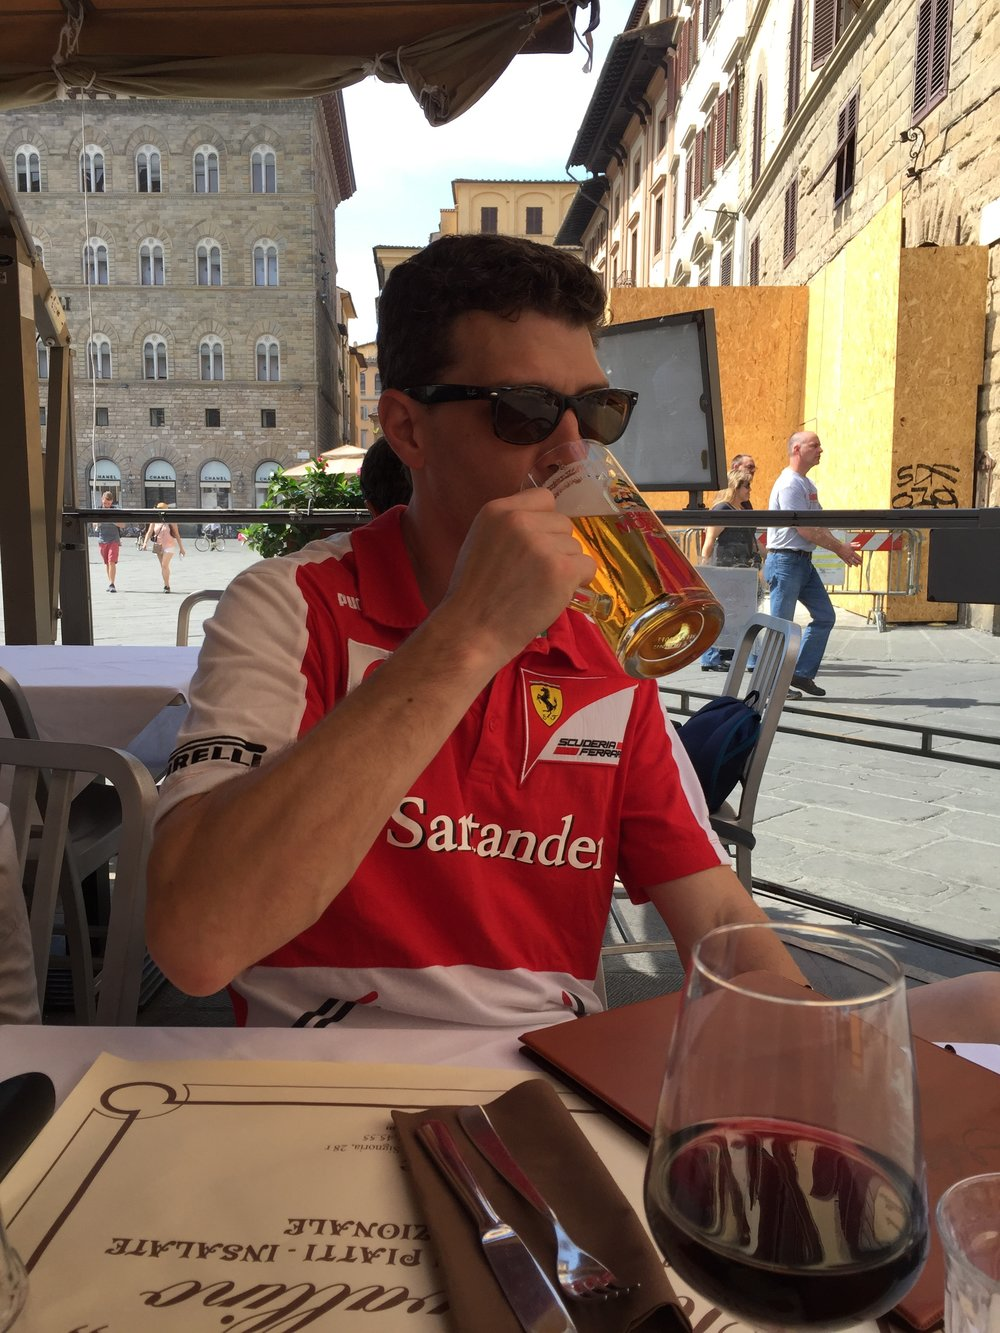 Josh in Florence enjoying a beverage while watching his favorite Formula One team during the 2016 Italian GP.